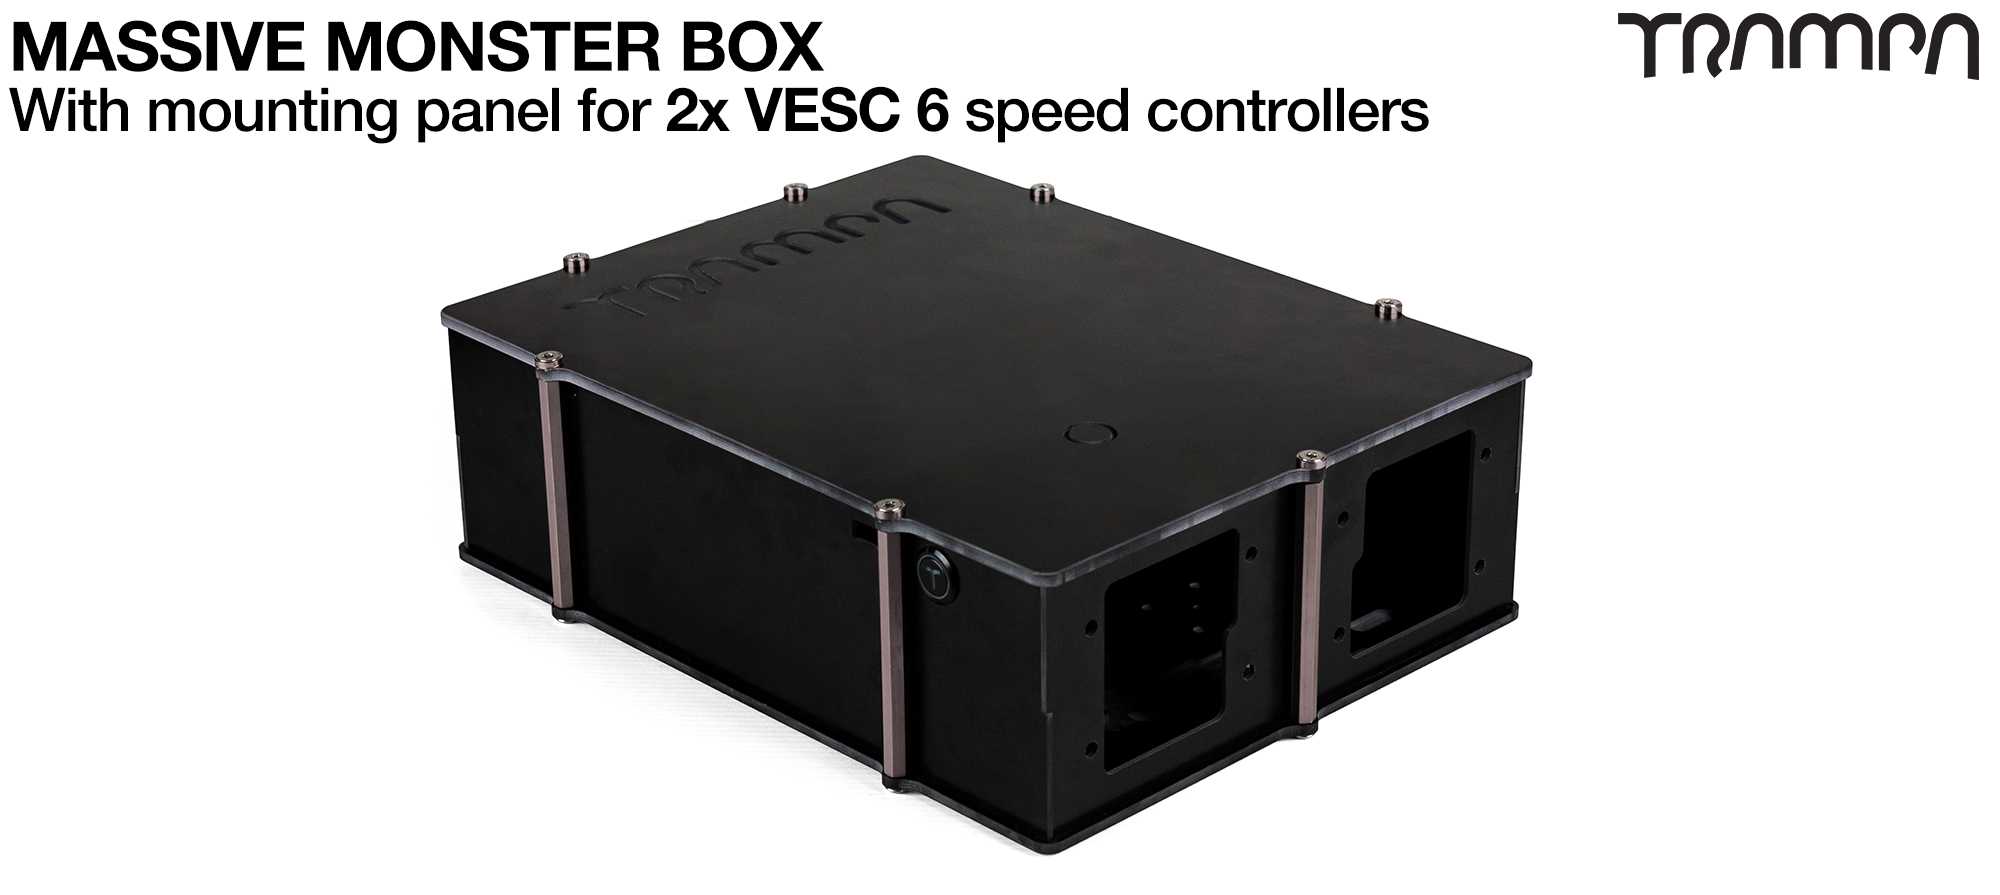 21700 MASSIVE MONSTER Box with 2x VESC 6 Mounting Panel